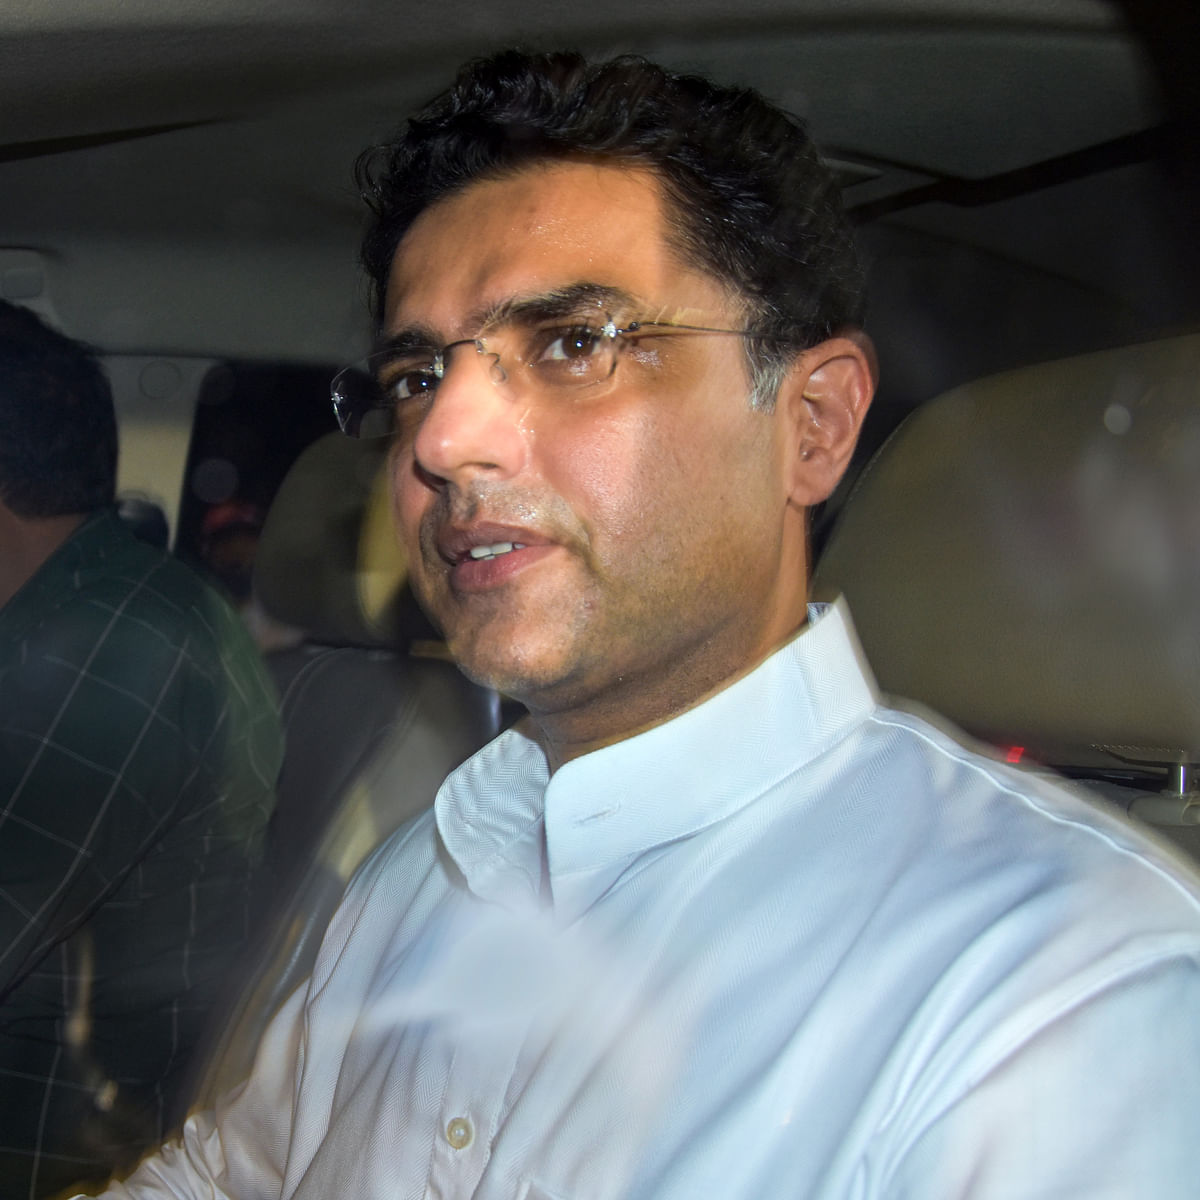 Rajasthan Political Crisis: Sachin Pilot breaks silence, says 'party is above everything else'